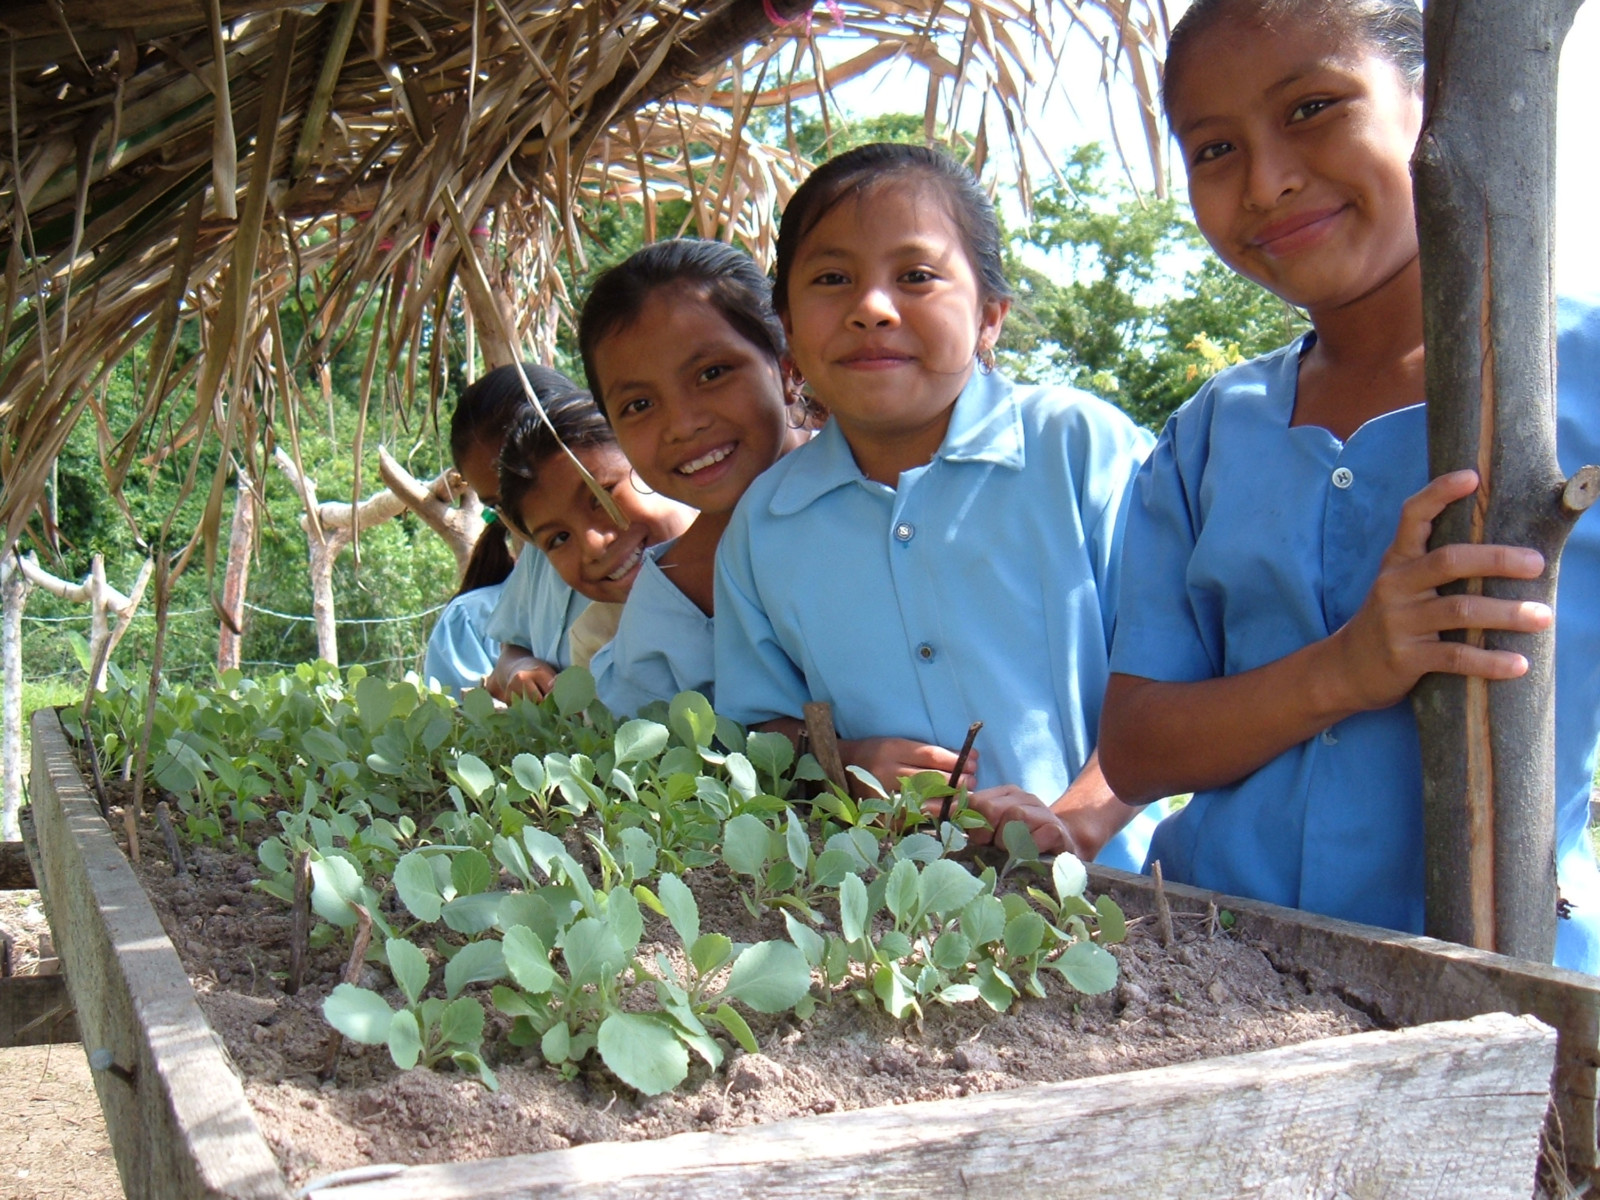 Plenty Belize school garden program.